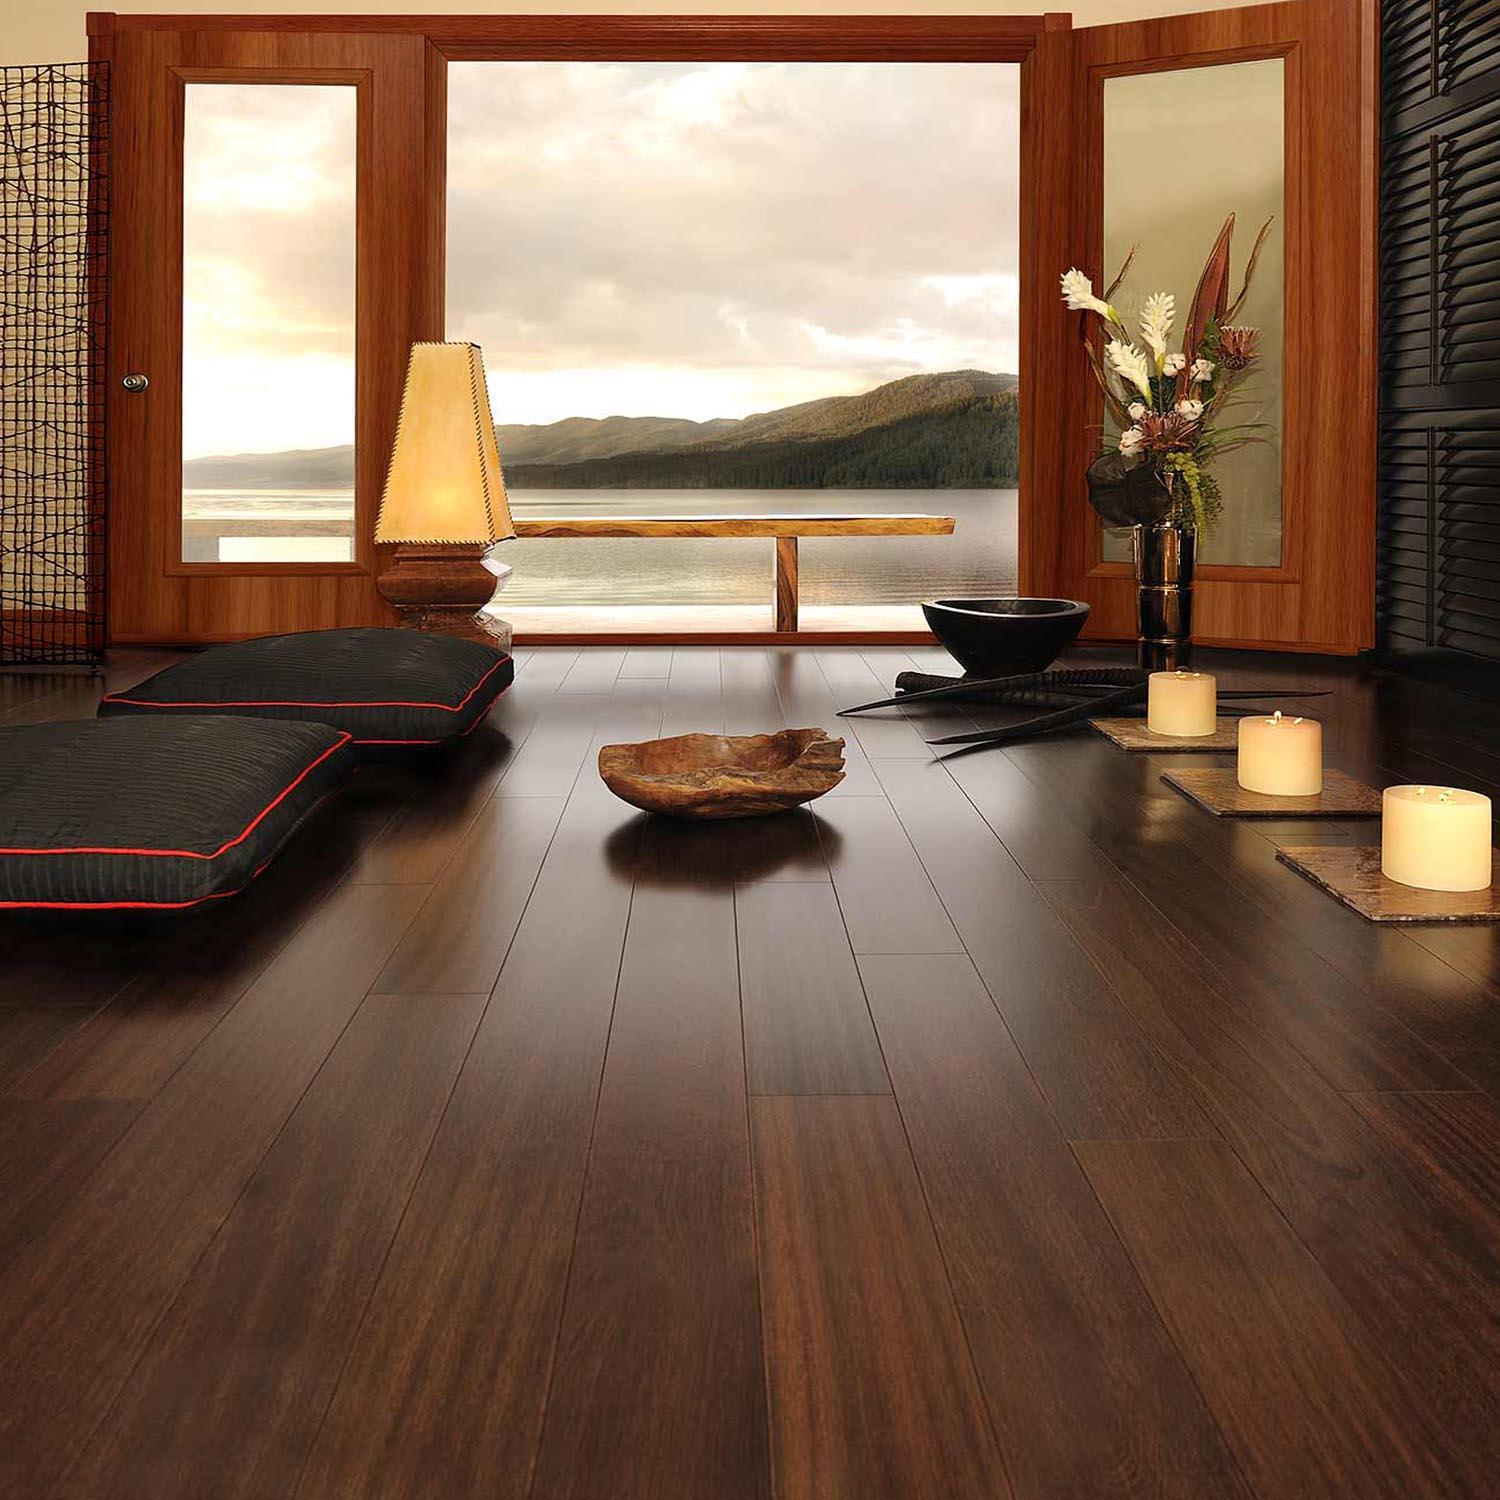 floor pros and cons of solid hardwood flooring your guy installing floors cost 1